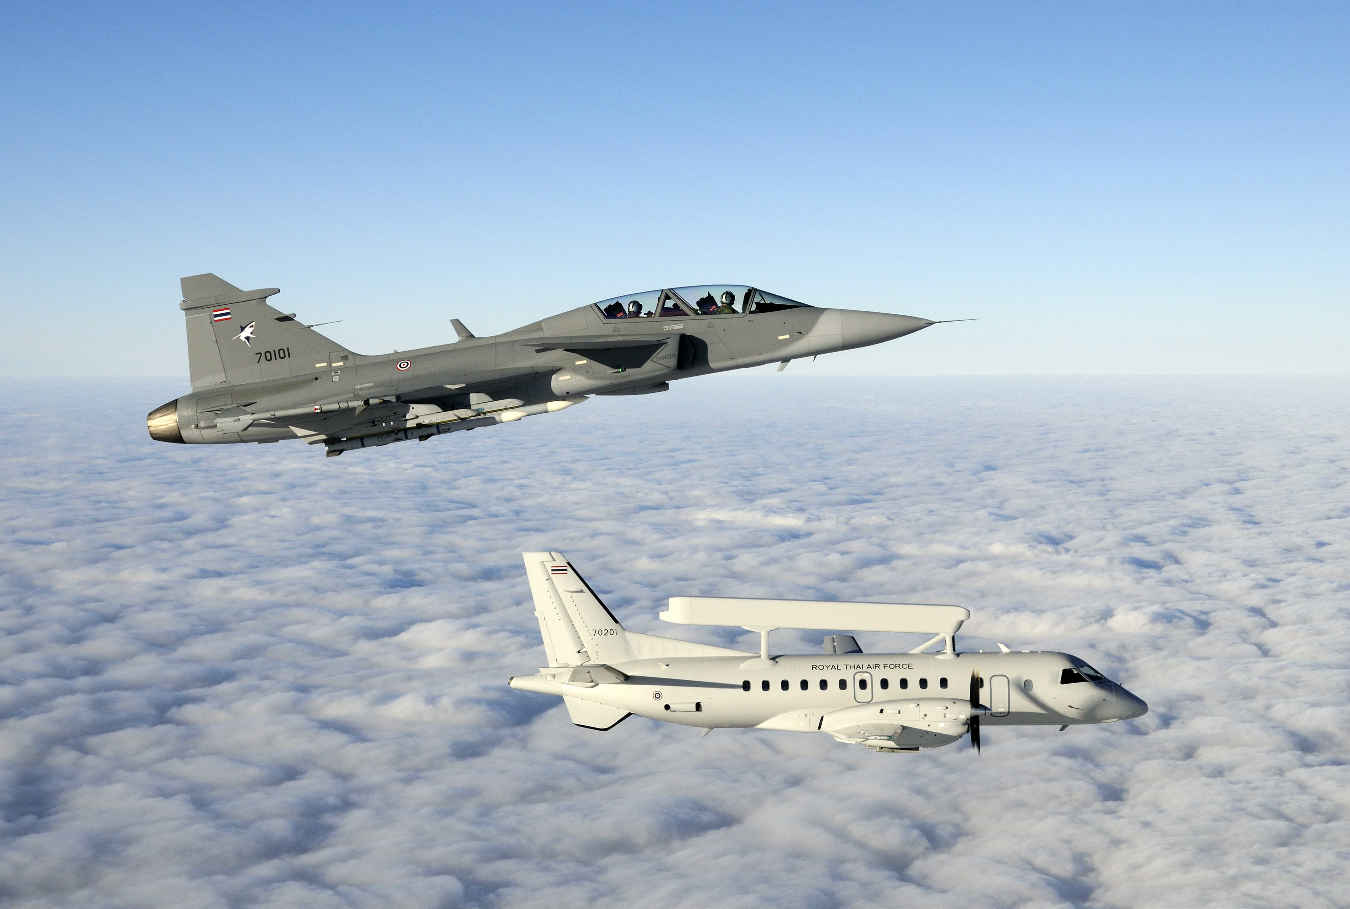 Saab to upgrade Thai Air Command and Control